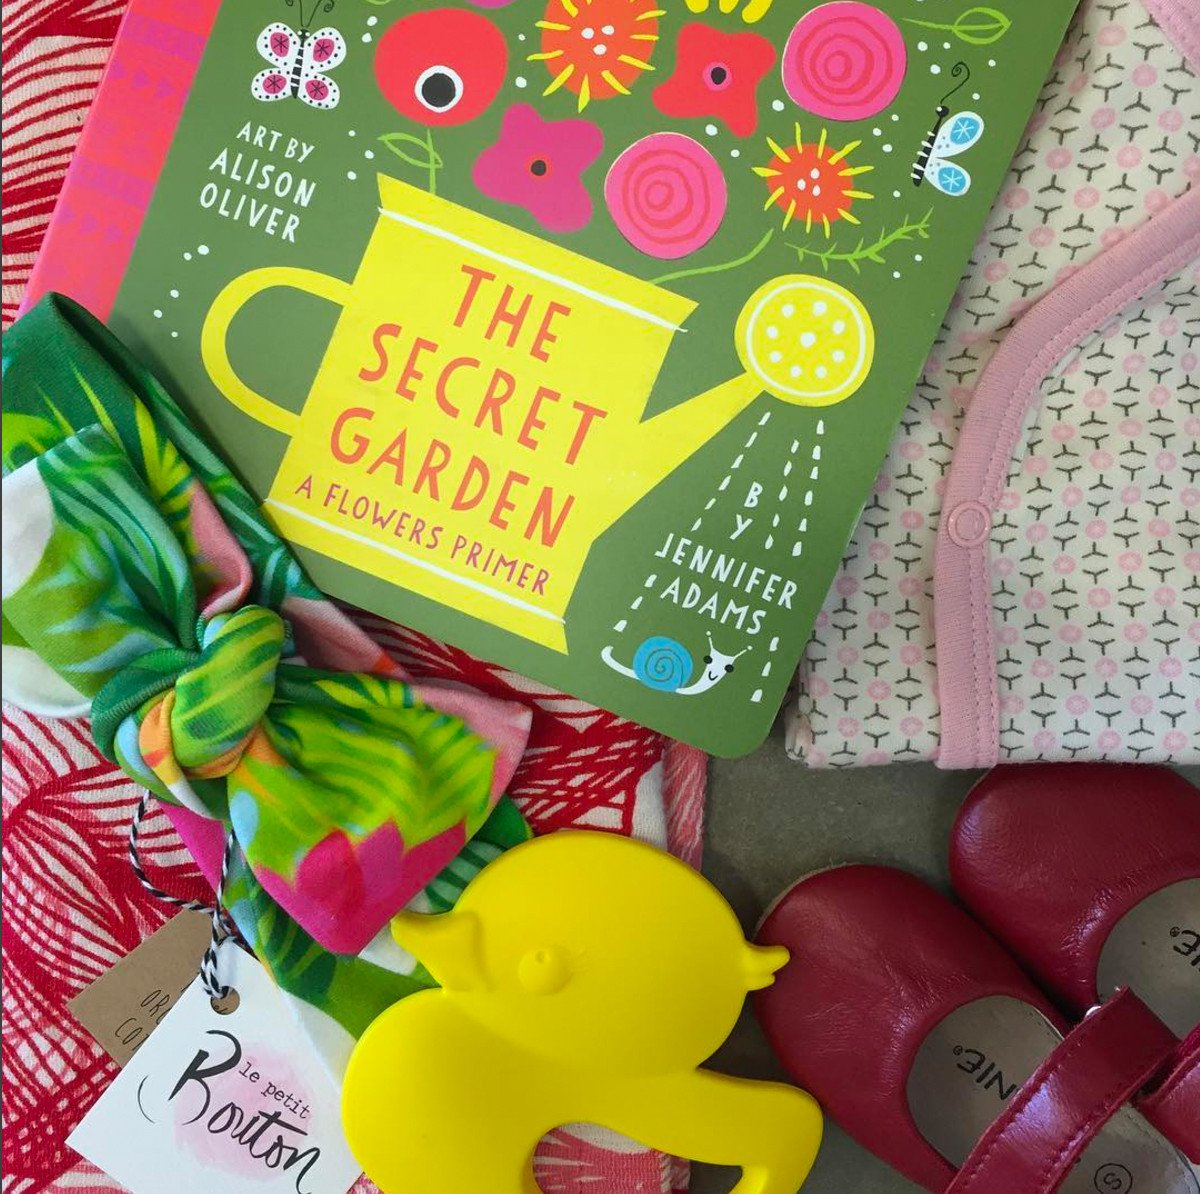 The Secret Garden Baby Board Book Babylit Books at Little Earth Nest Eco Shop